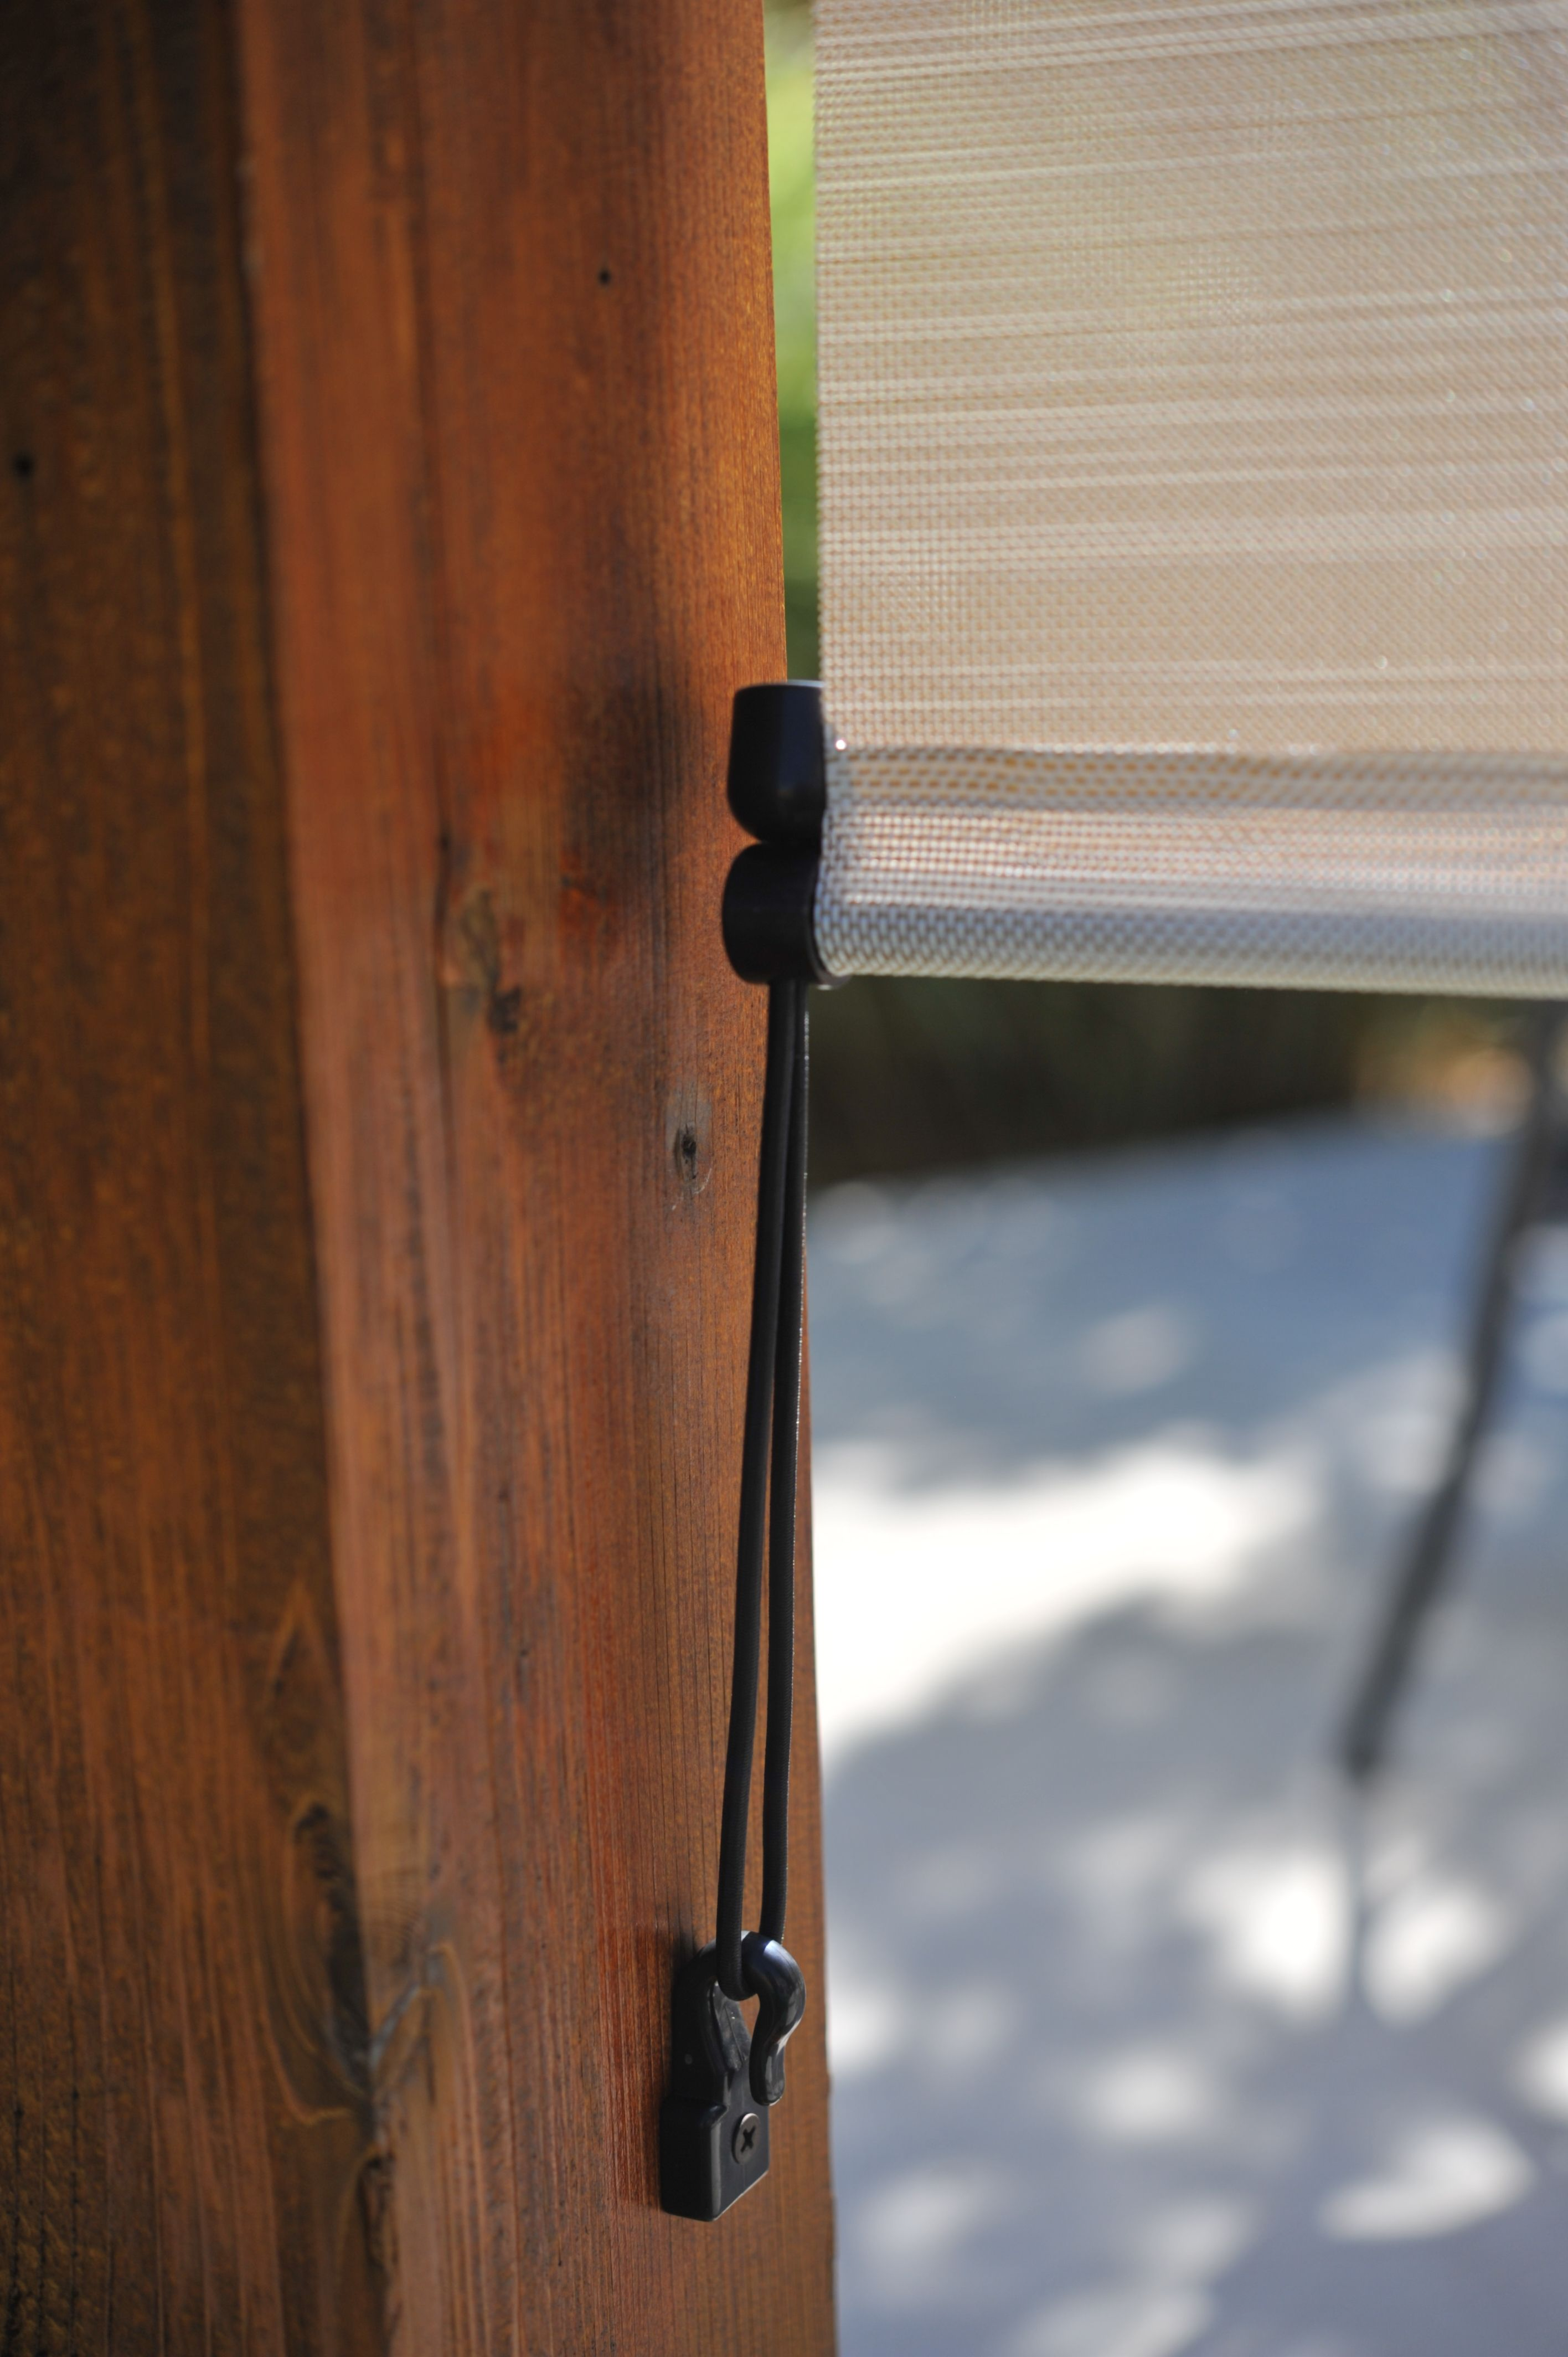 Exterior Shade Tie Downs Eliminate The Shade From Swaying